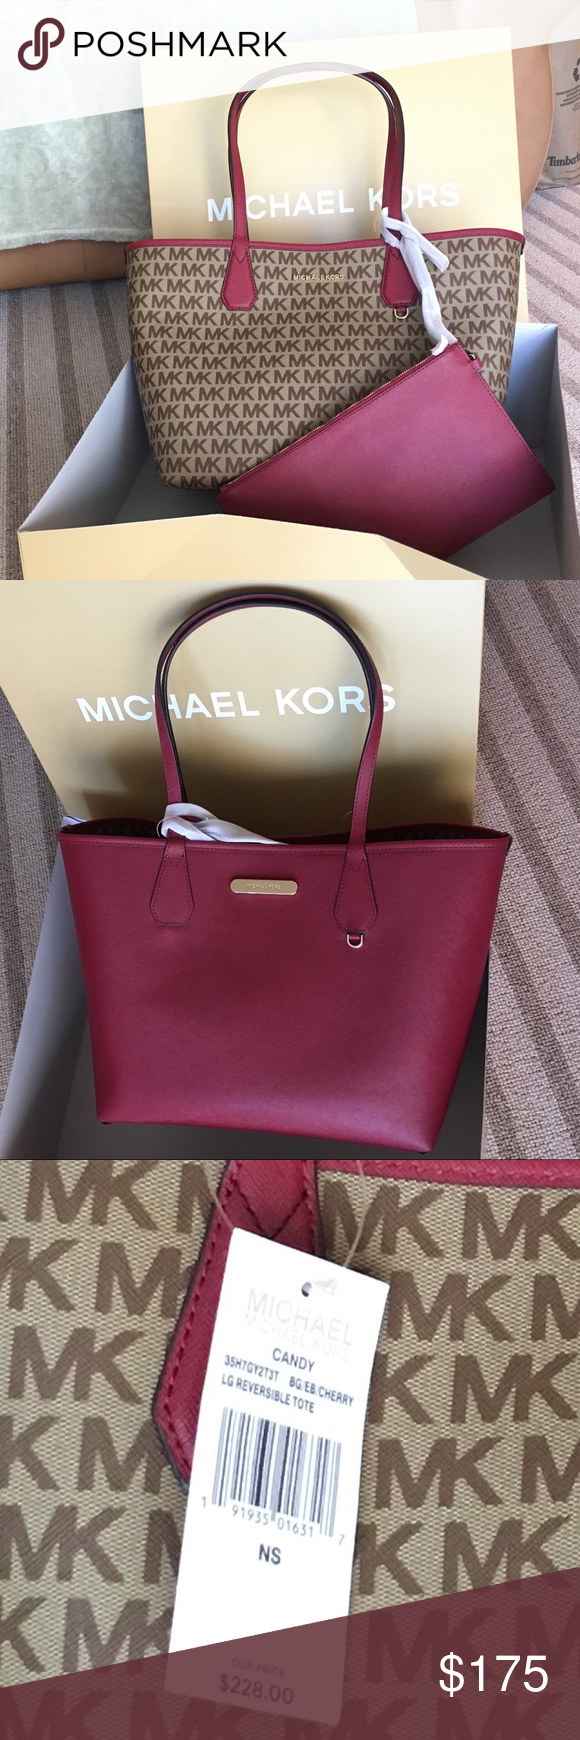 e8a7d4cc68c252 Michael kors candy reversible tote bag New with tag attach. Maroon red on